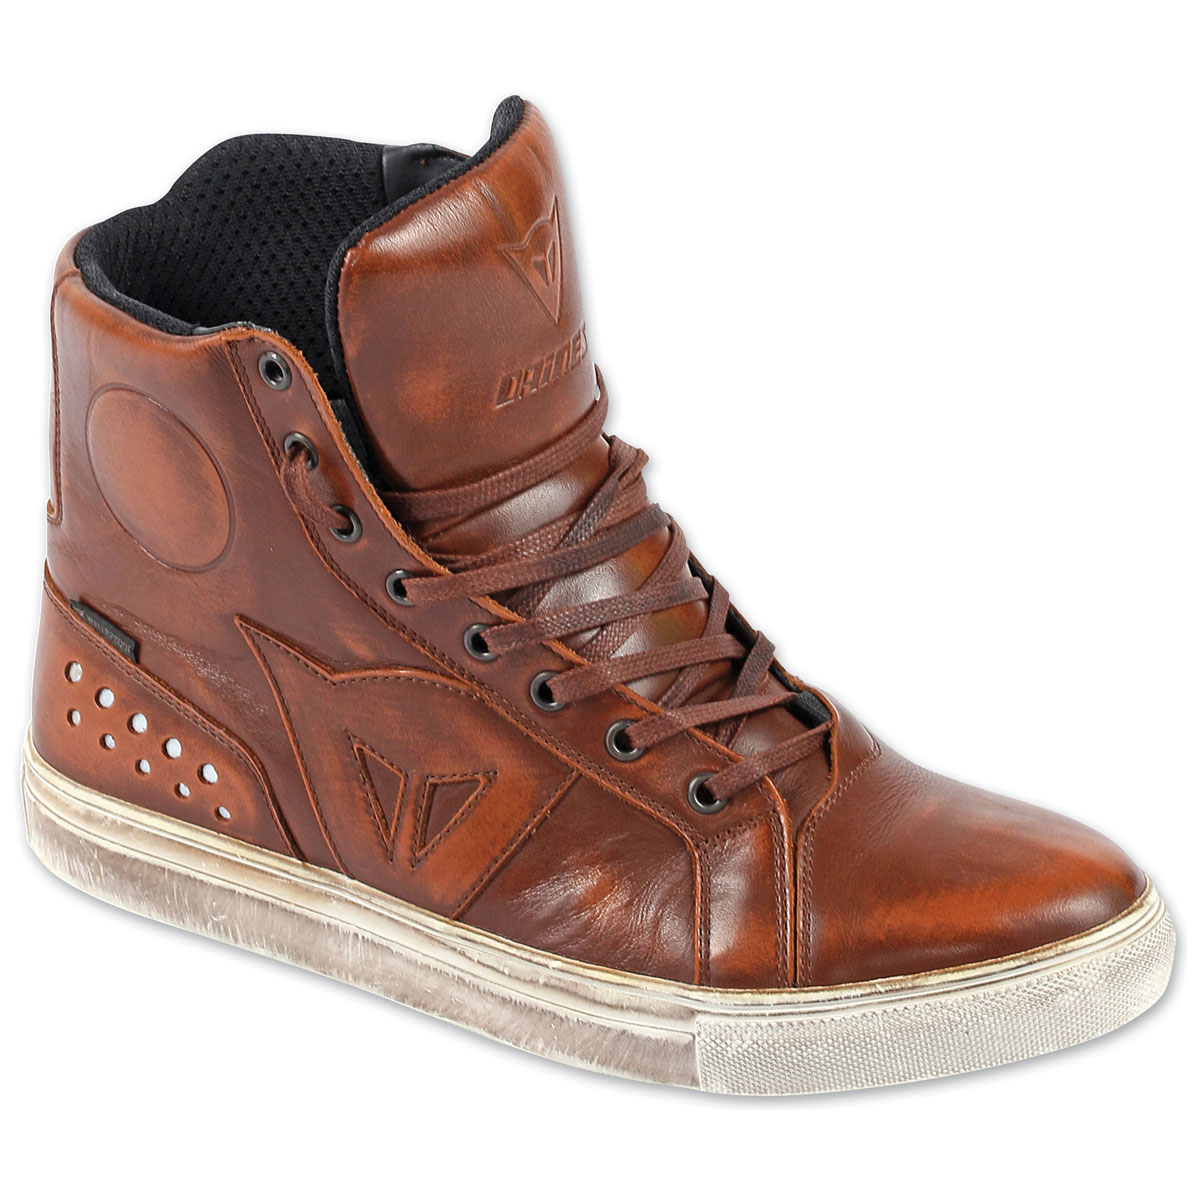 Rocker Shoes Mens